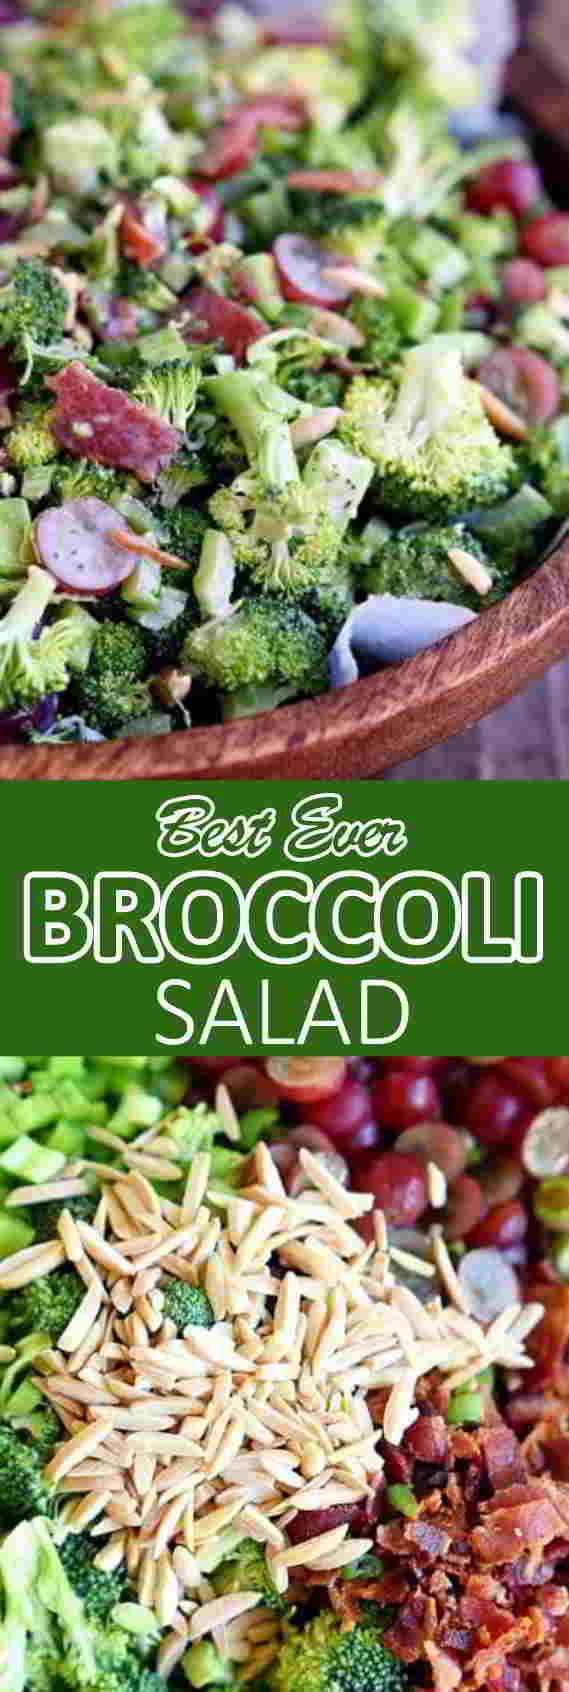 Best-Broccoli-Salad-Recipe